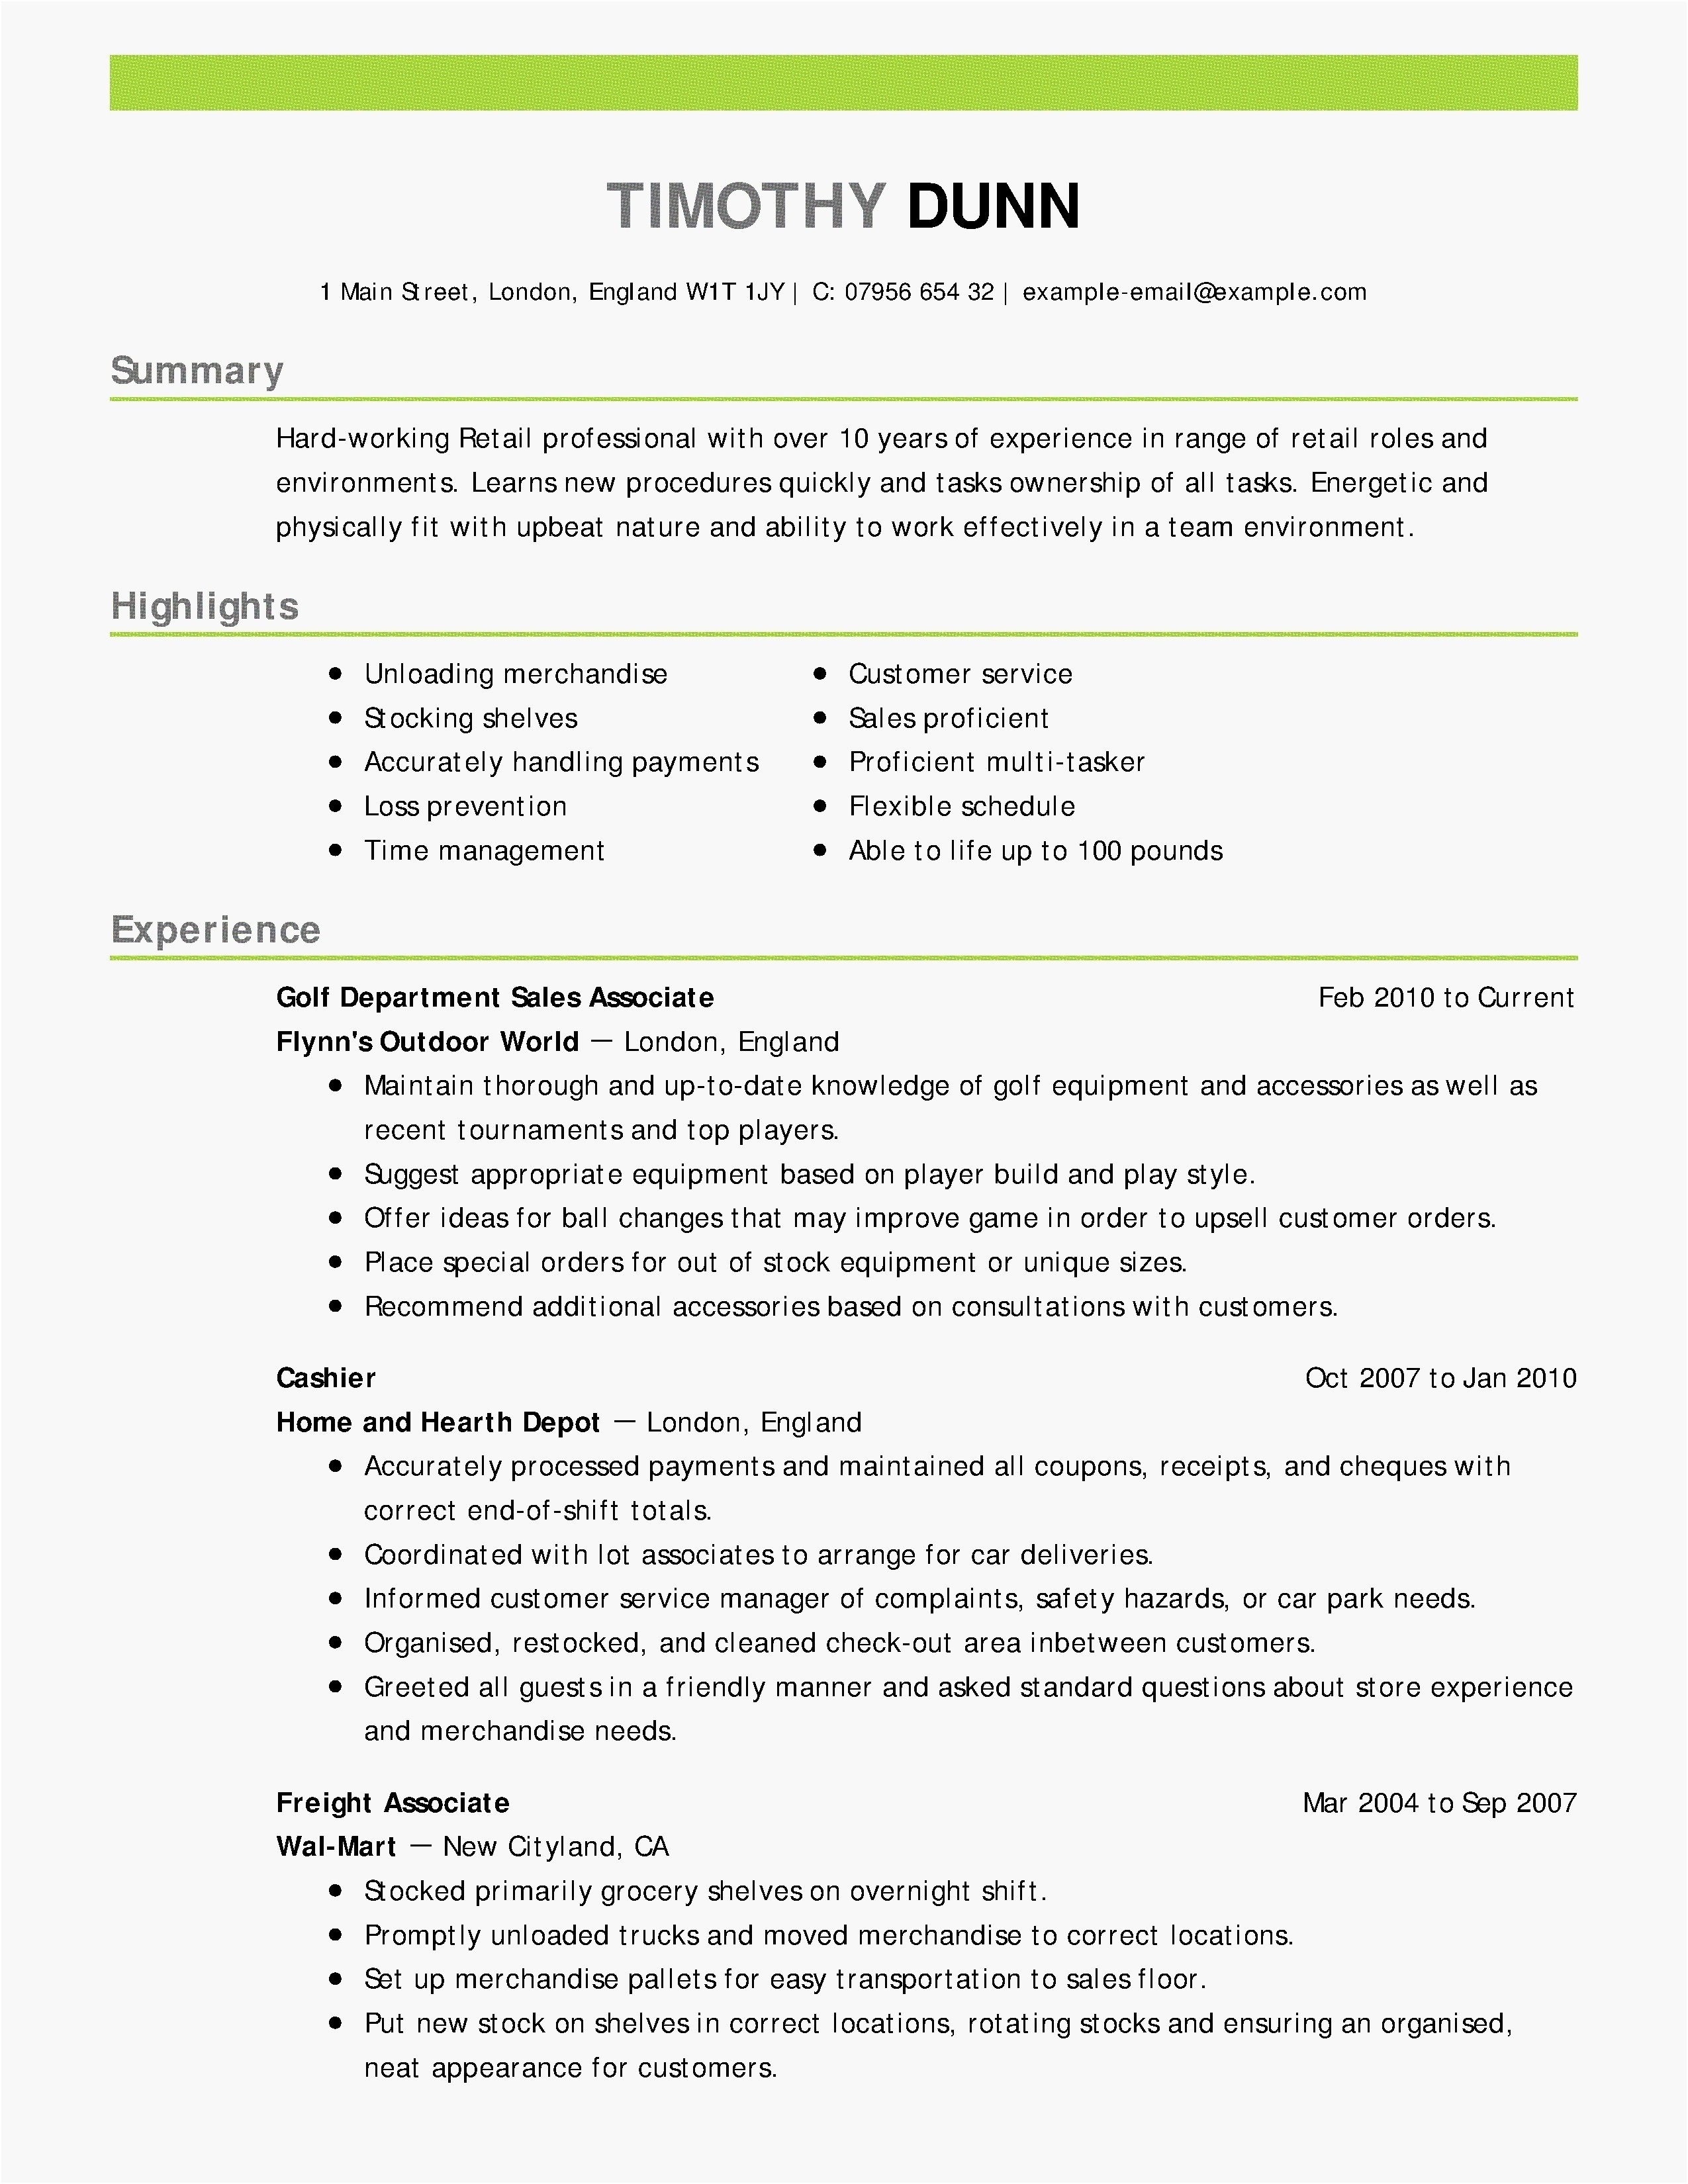 content writer resume example-Content Writer Resume 25 Content Writer Resume 20-o